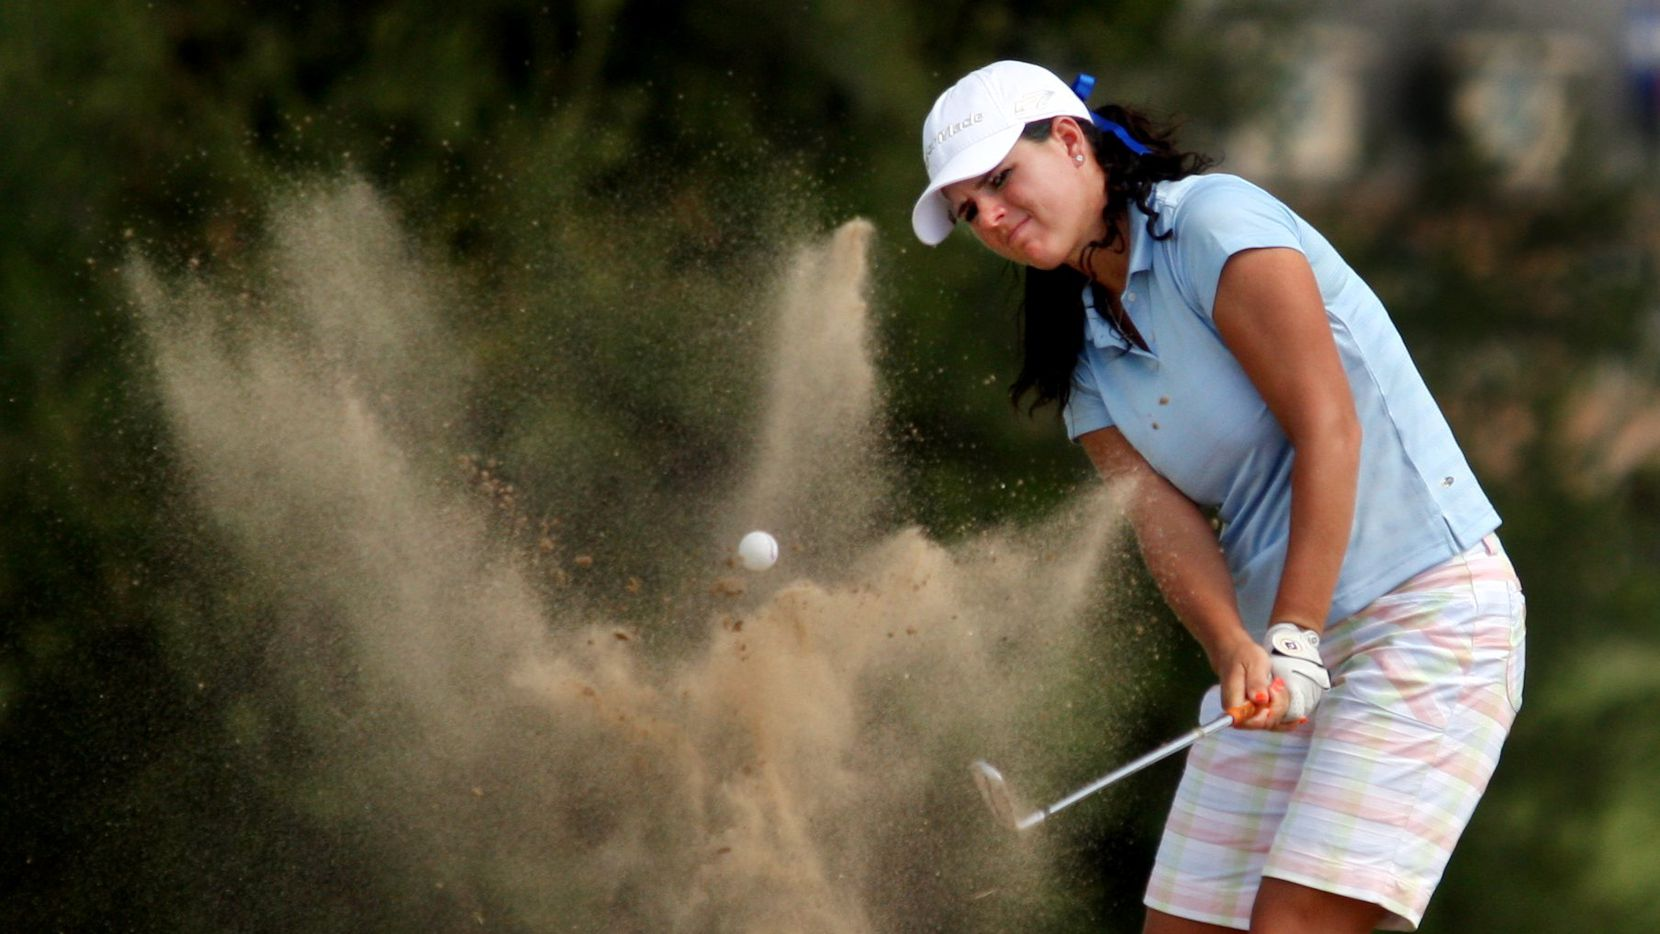 Caney  Hines of San Antonio blasts out of a bunker on the 18th hole during competition in Texas Women's Open at the Eastern Hills Country Club in Garland.